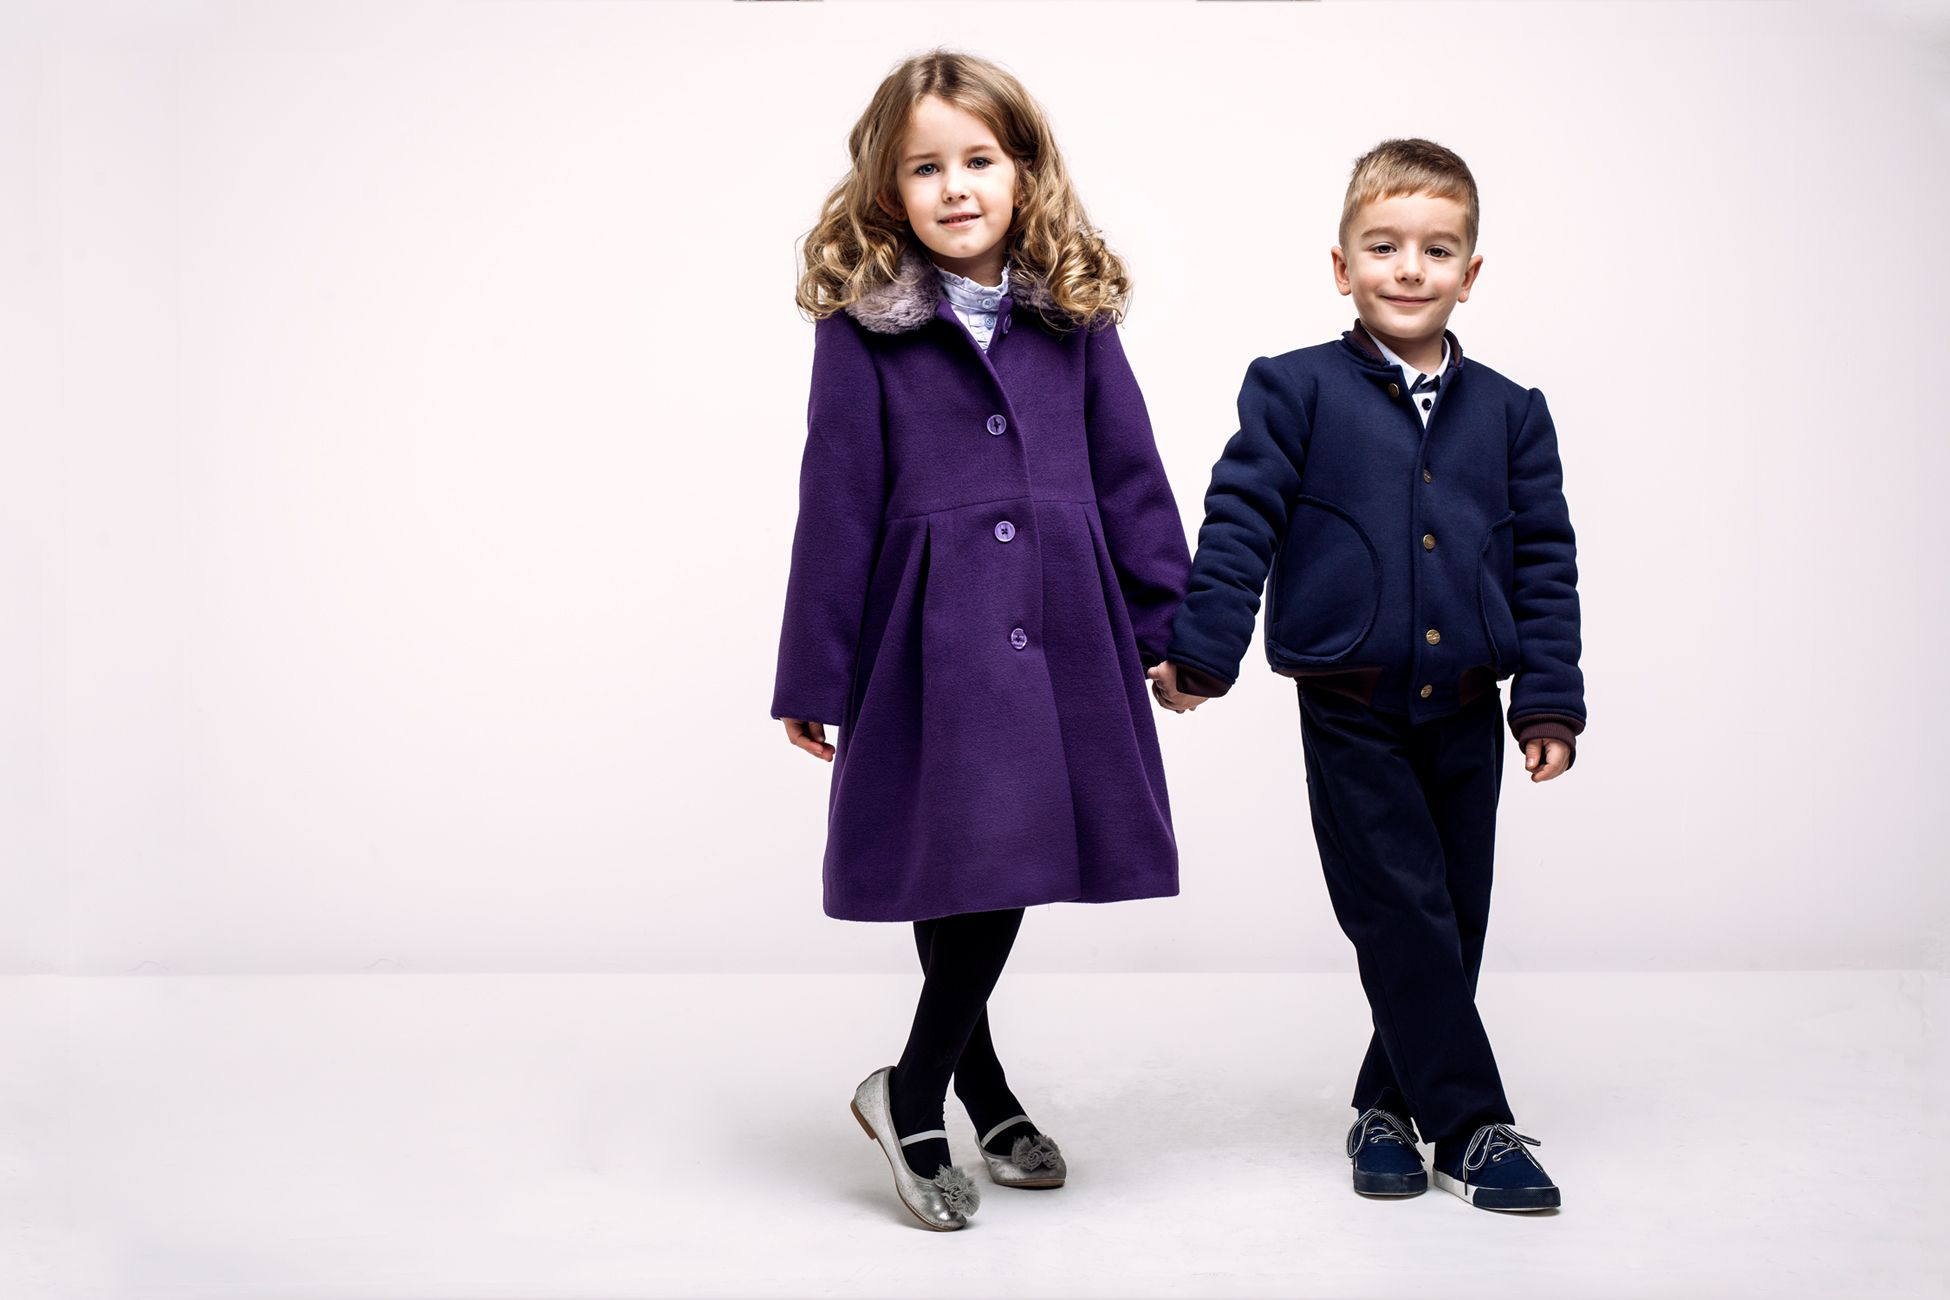 Beautiful coat for girls from Wonders Fashion. We ship worldwide! See it on: http://wondersfashion.pl/girls-coat-with-fur-collar-p-154.html